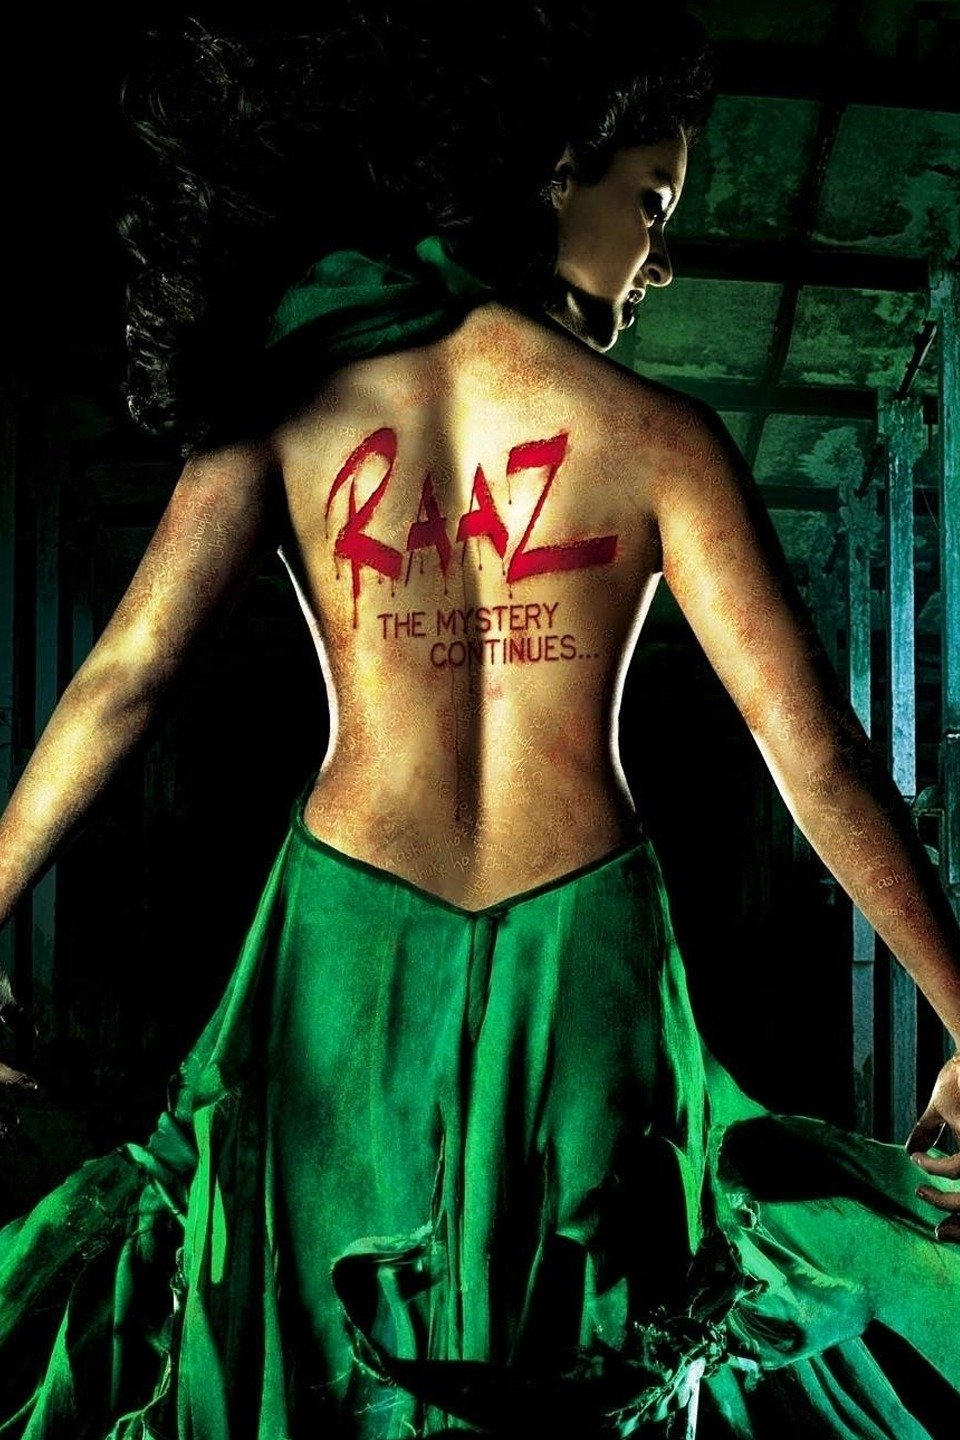 Raaz: The Mystery Continues 2009